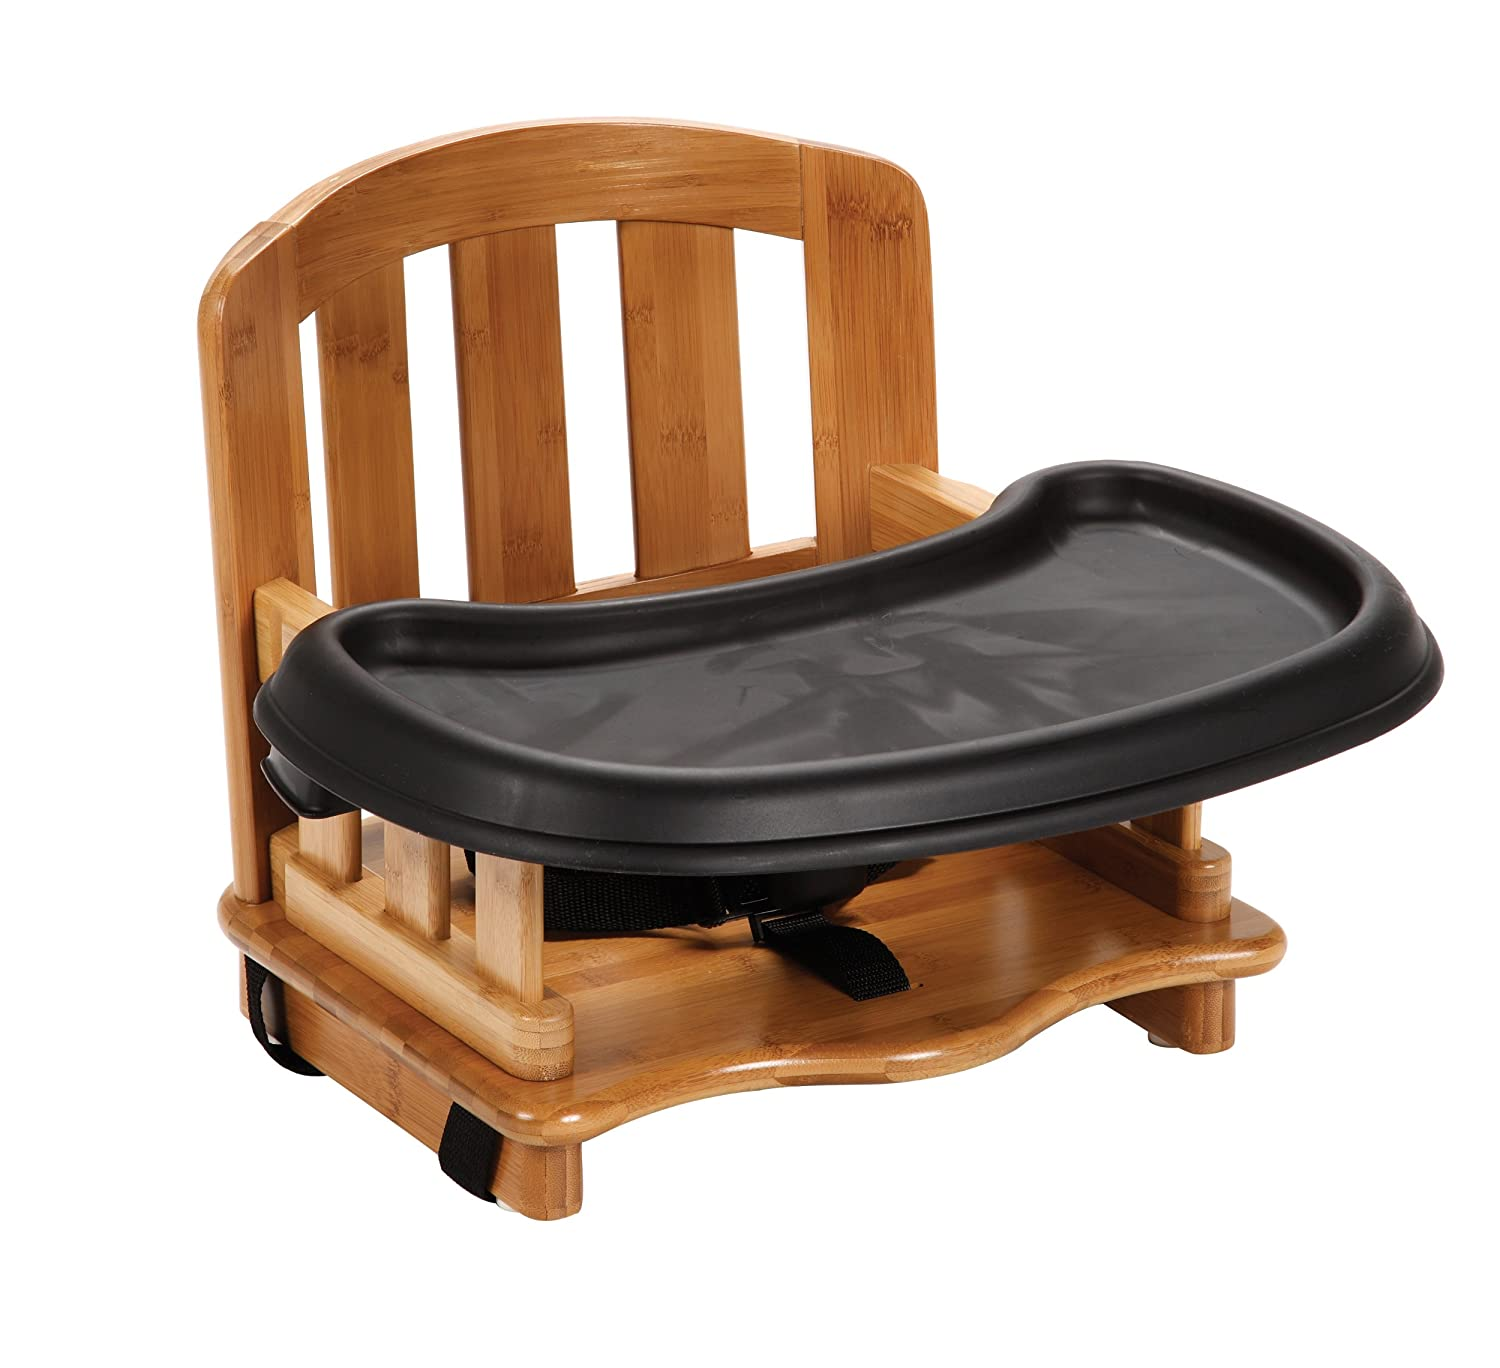 Amazon.com : Safety 1st Nature Next Booster Seat : Chair Booster Seats :  Baby